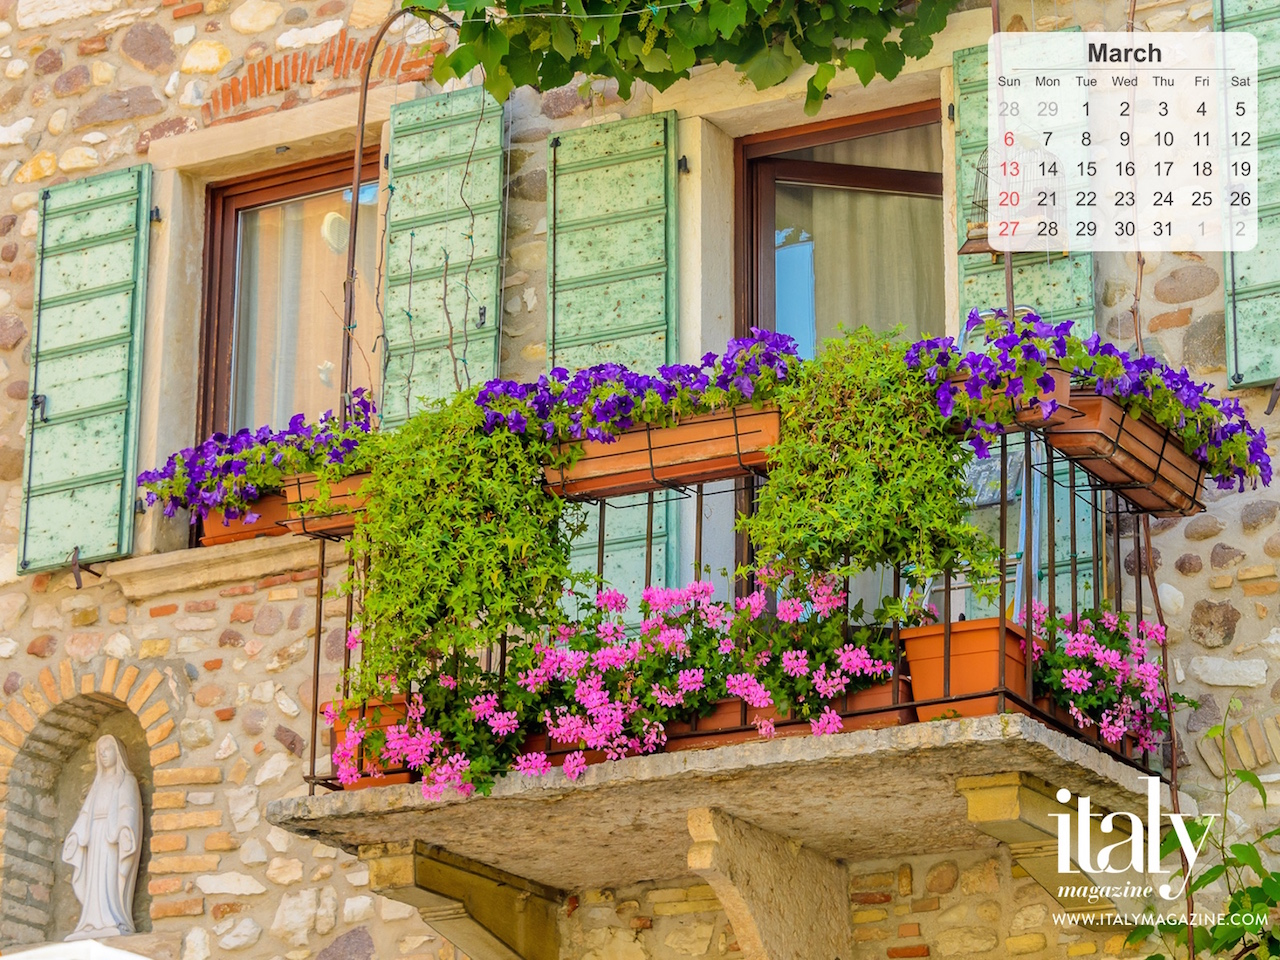 Wallpaper Calendar   March 2016 ITALY Magazine 1280x960